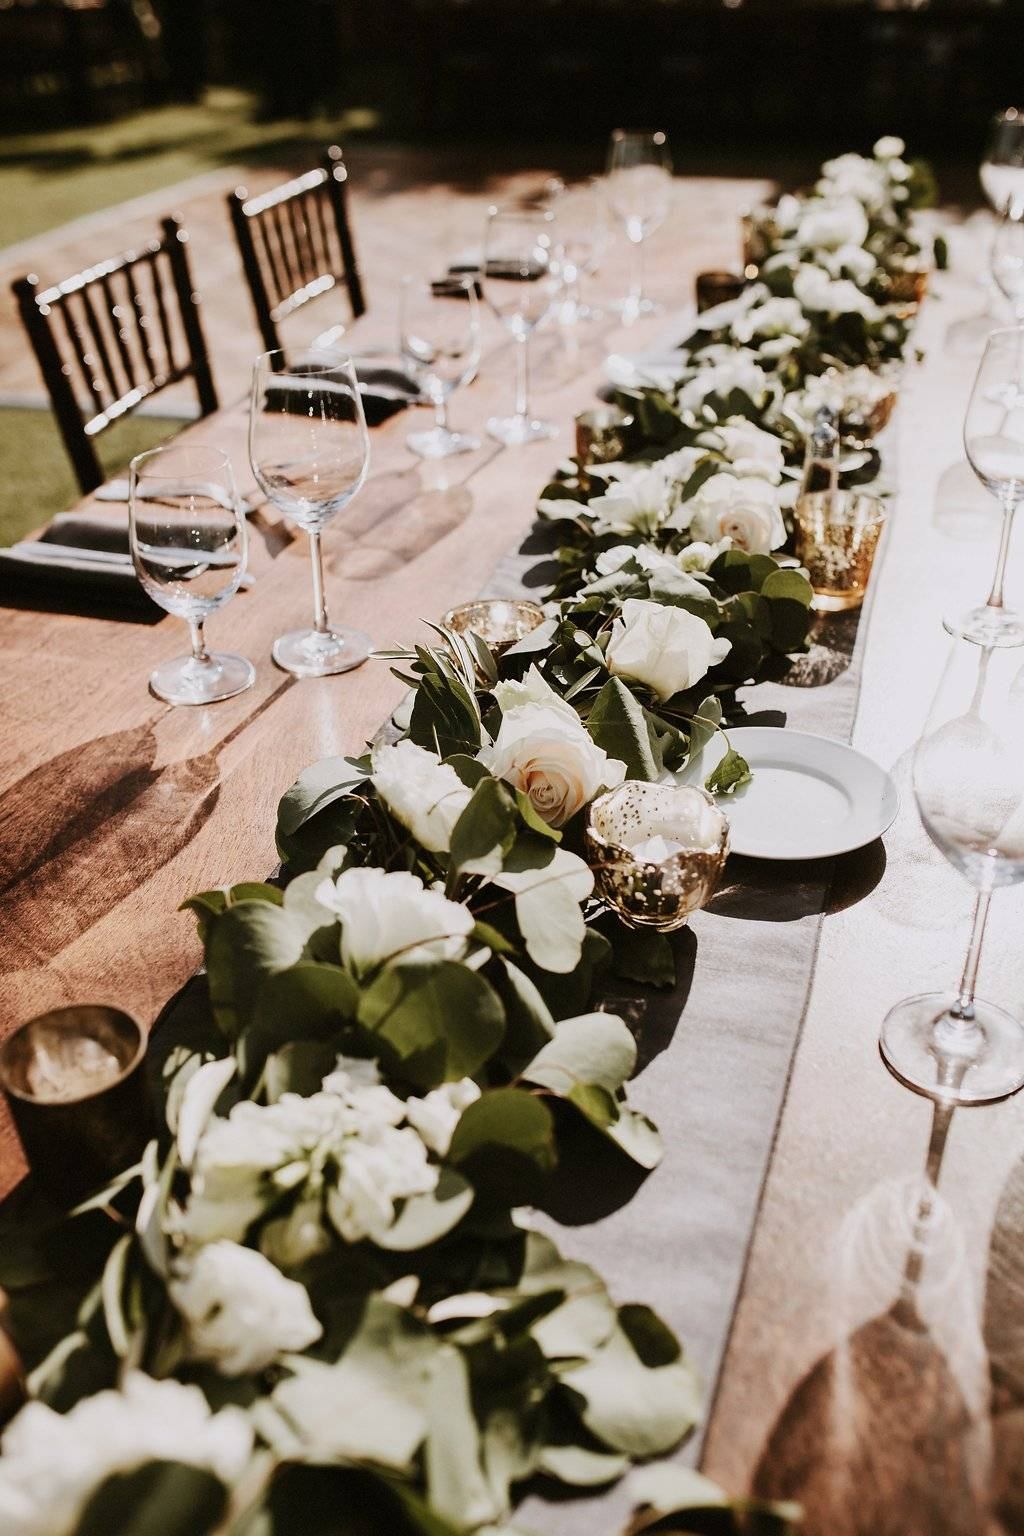 lush wedding, organic wedding, white and green wedding, Los Angeles florist, minimalist luxury wedding, Vave events, wedding decor, wedding flowers